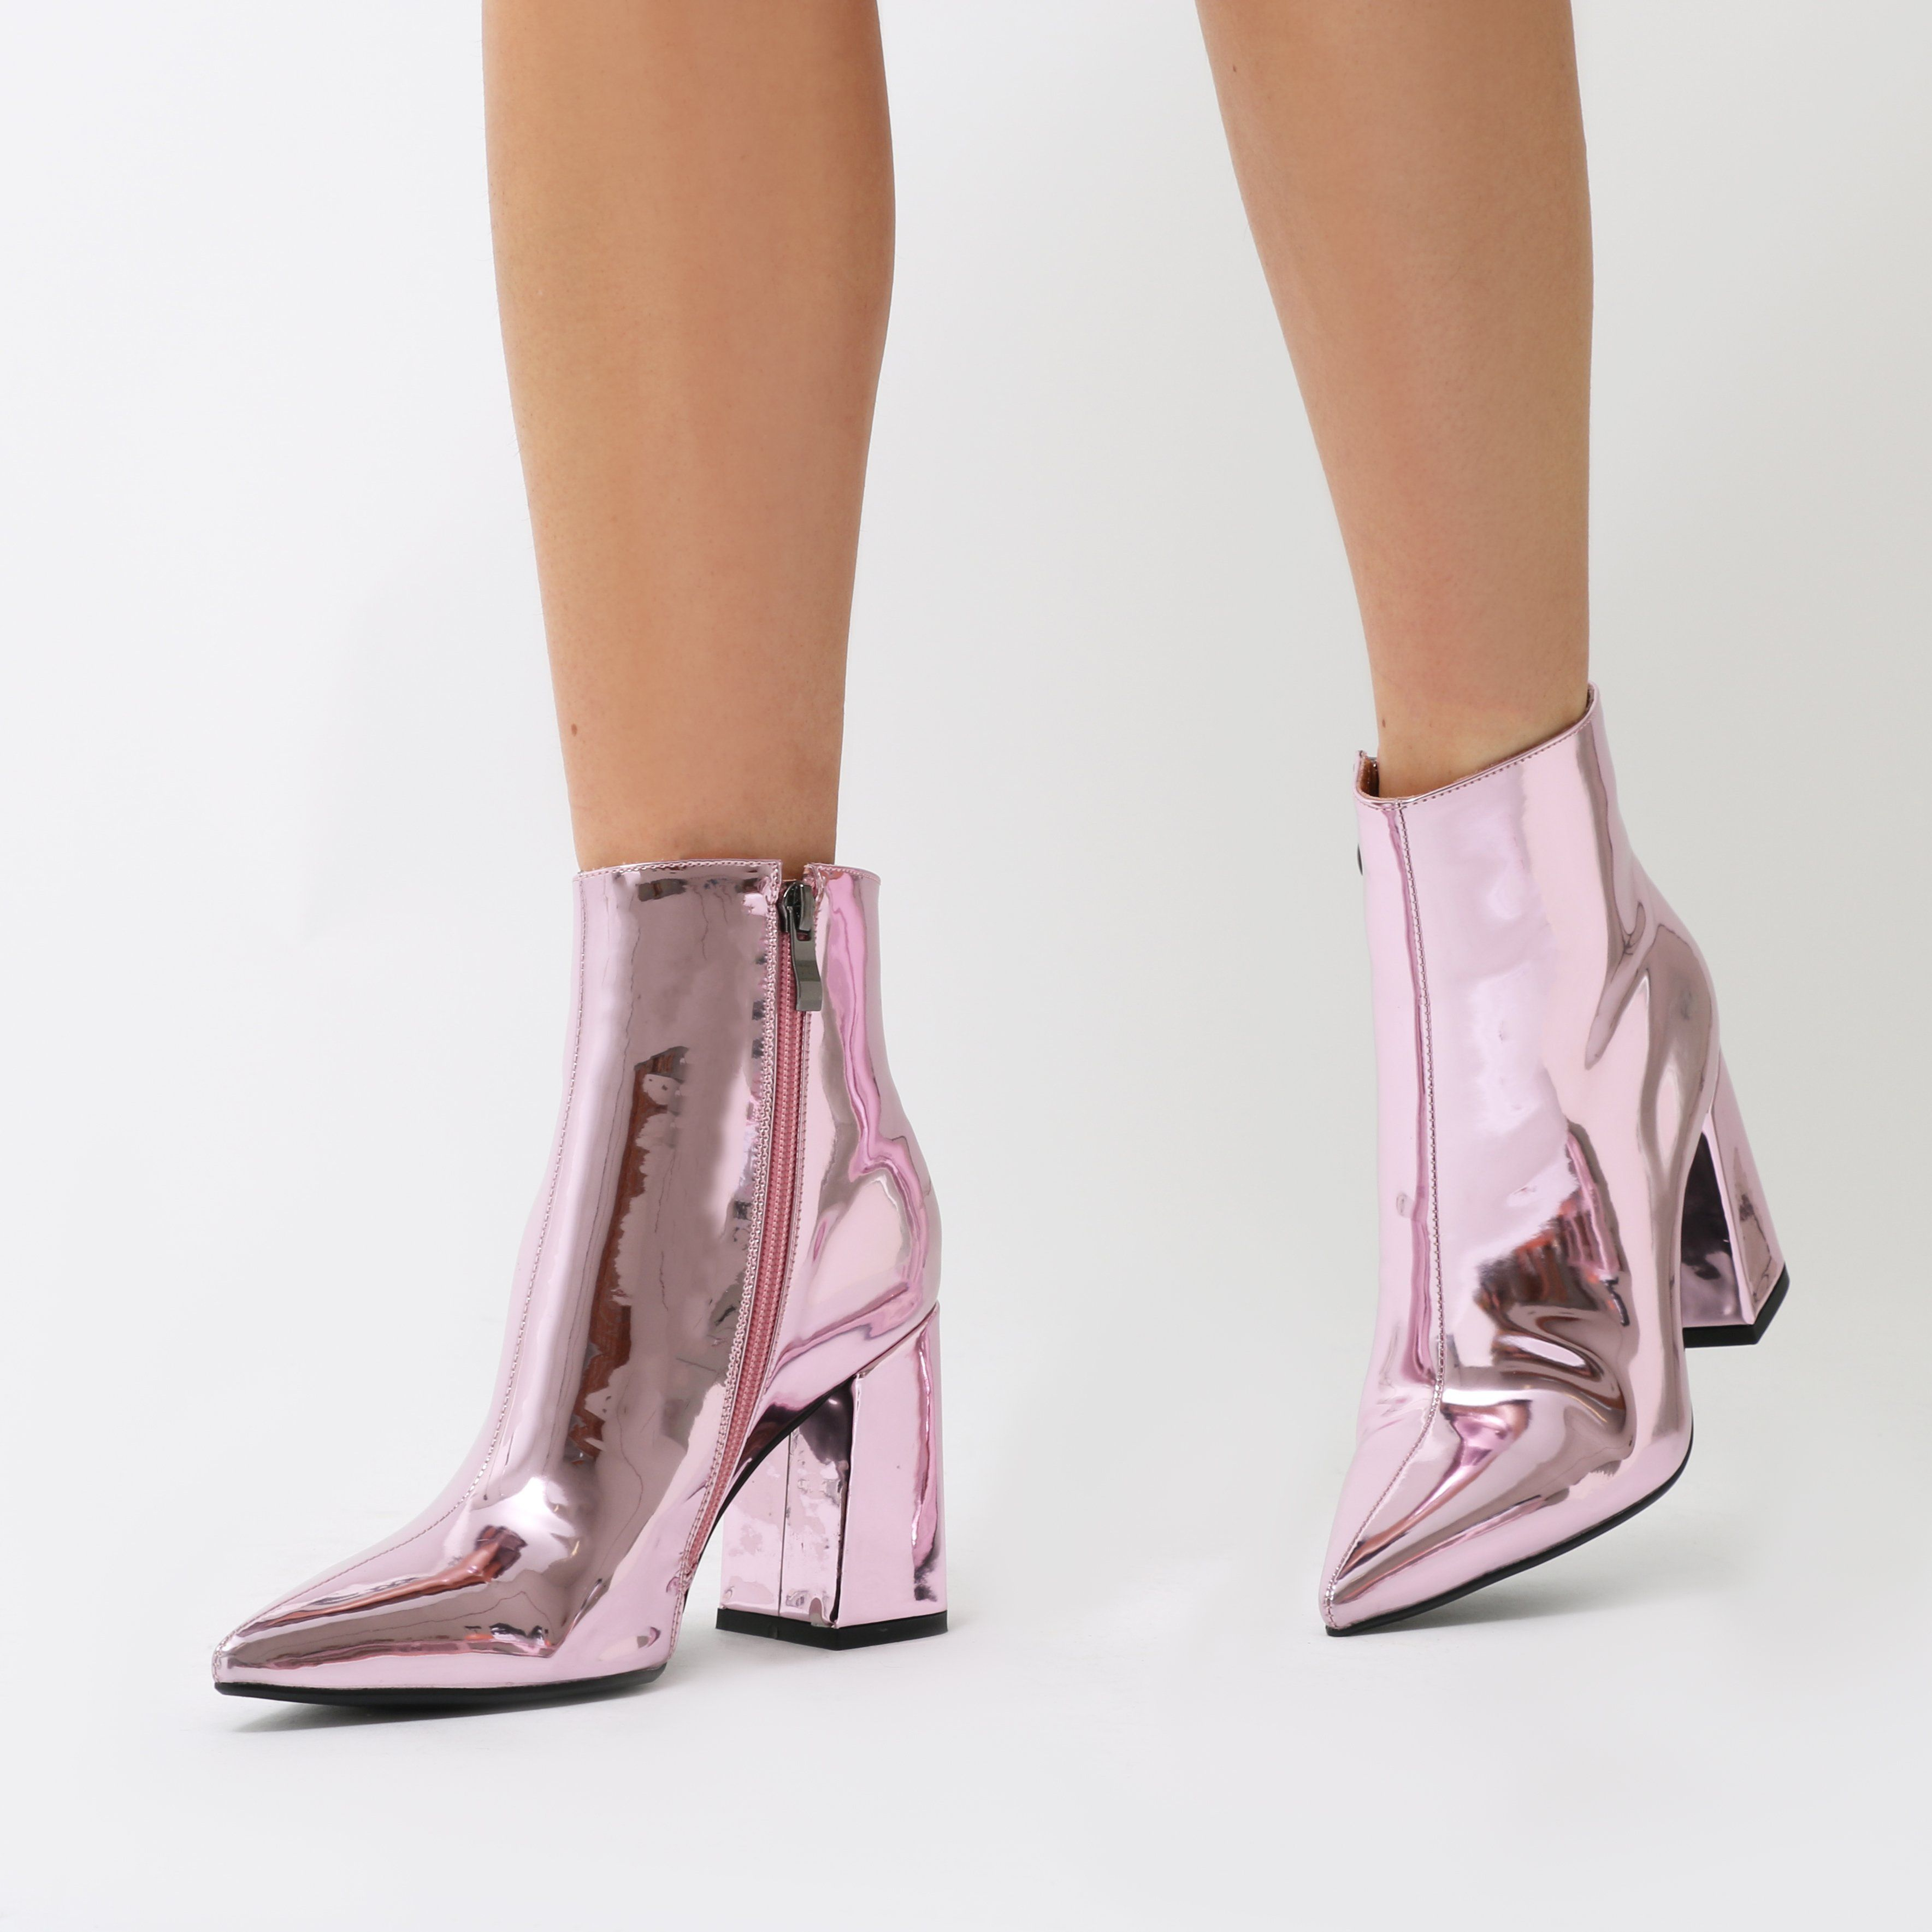 44bb3e70a468 Featuring a flared block heel and pointed toe in a high shine liquid  metallic. Sits just on the ankle so perfect paired with dresses and ...